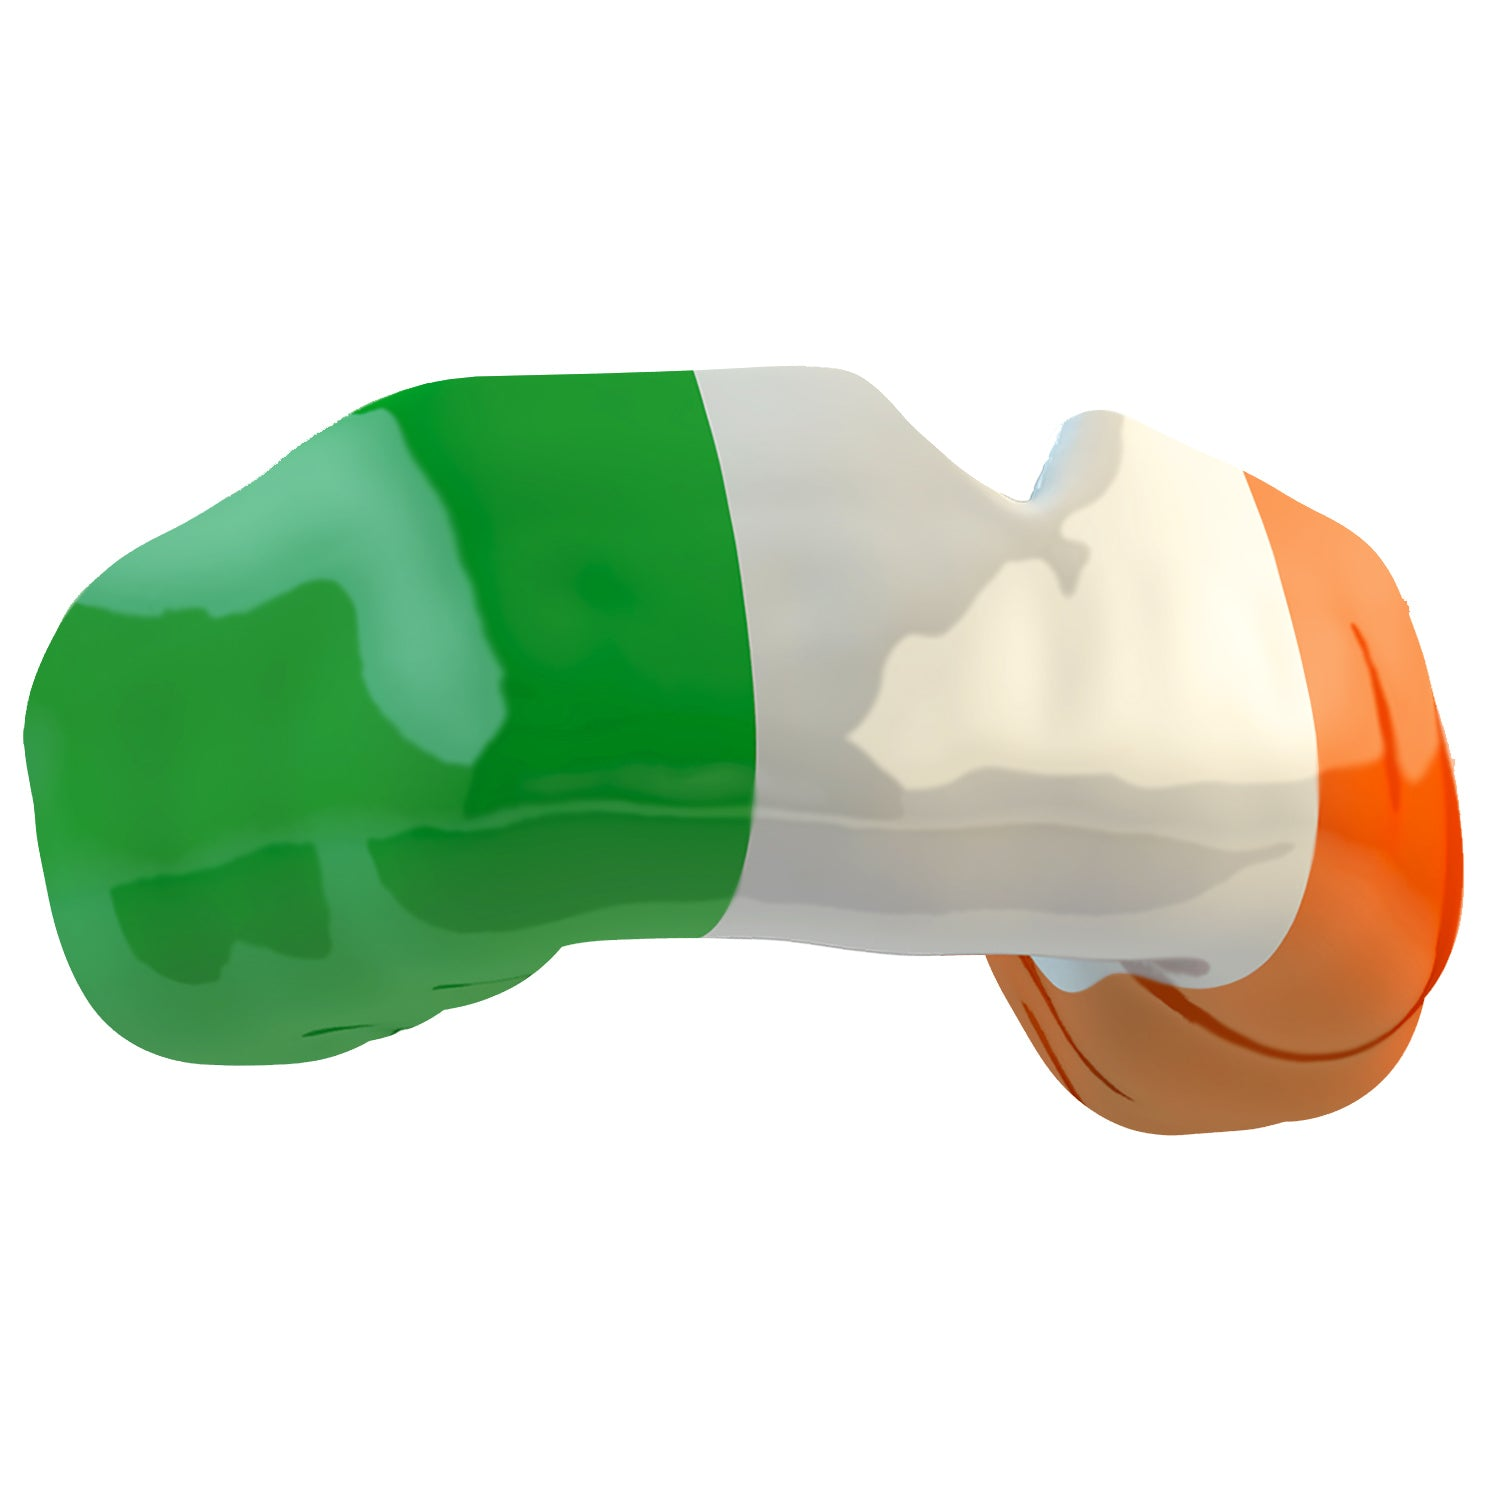 SAFEJAWZ® Popular Design Custom-fit Mouthguard - The Patrick. Ireland Flag Gum Shield.